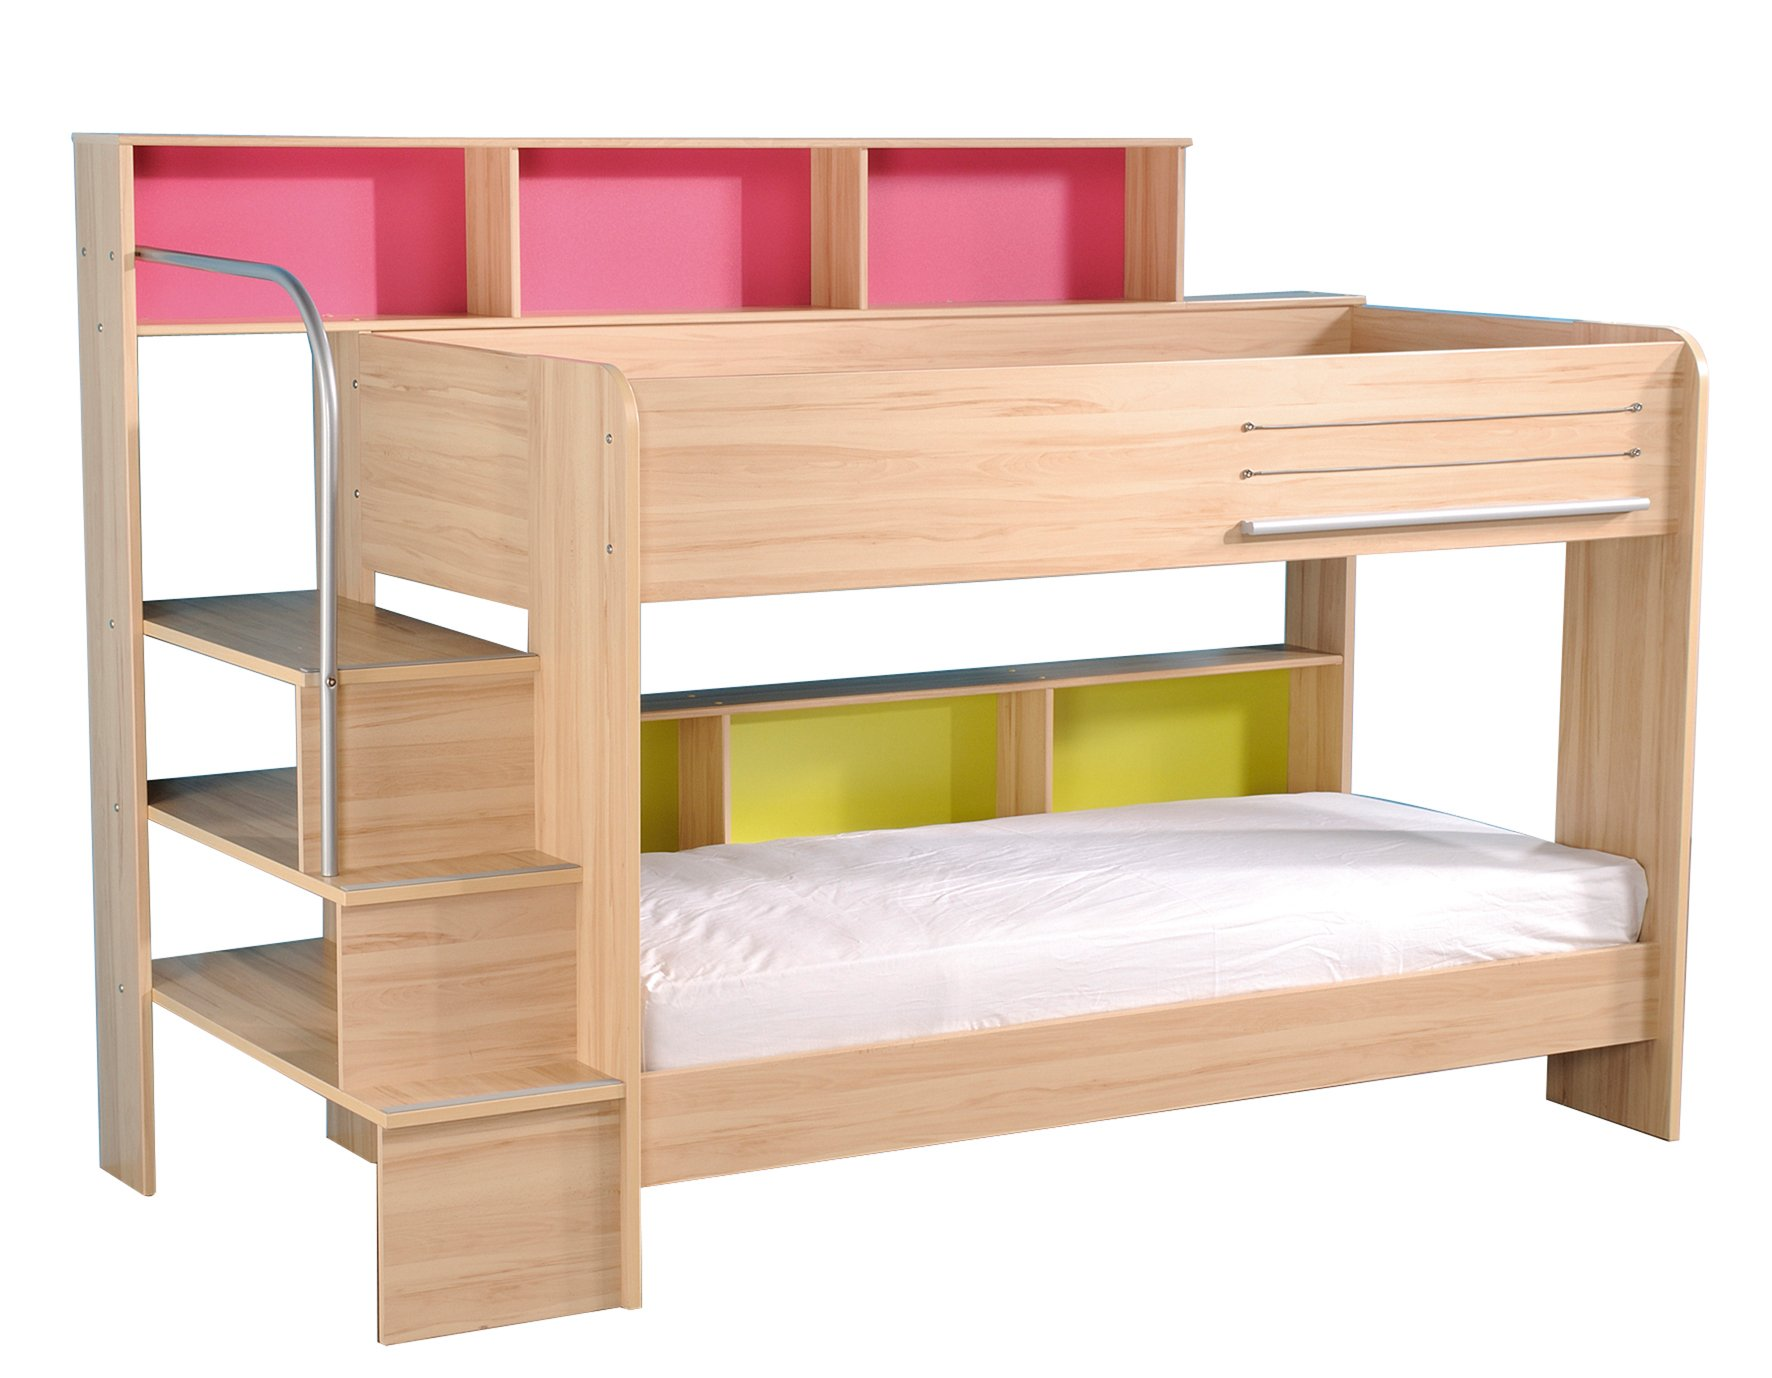 Lovely white ikea bunk beds on pink bedroom ideas for girls teen with